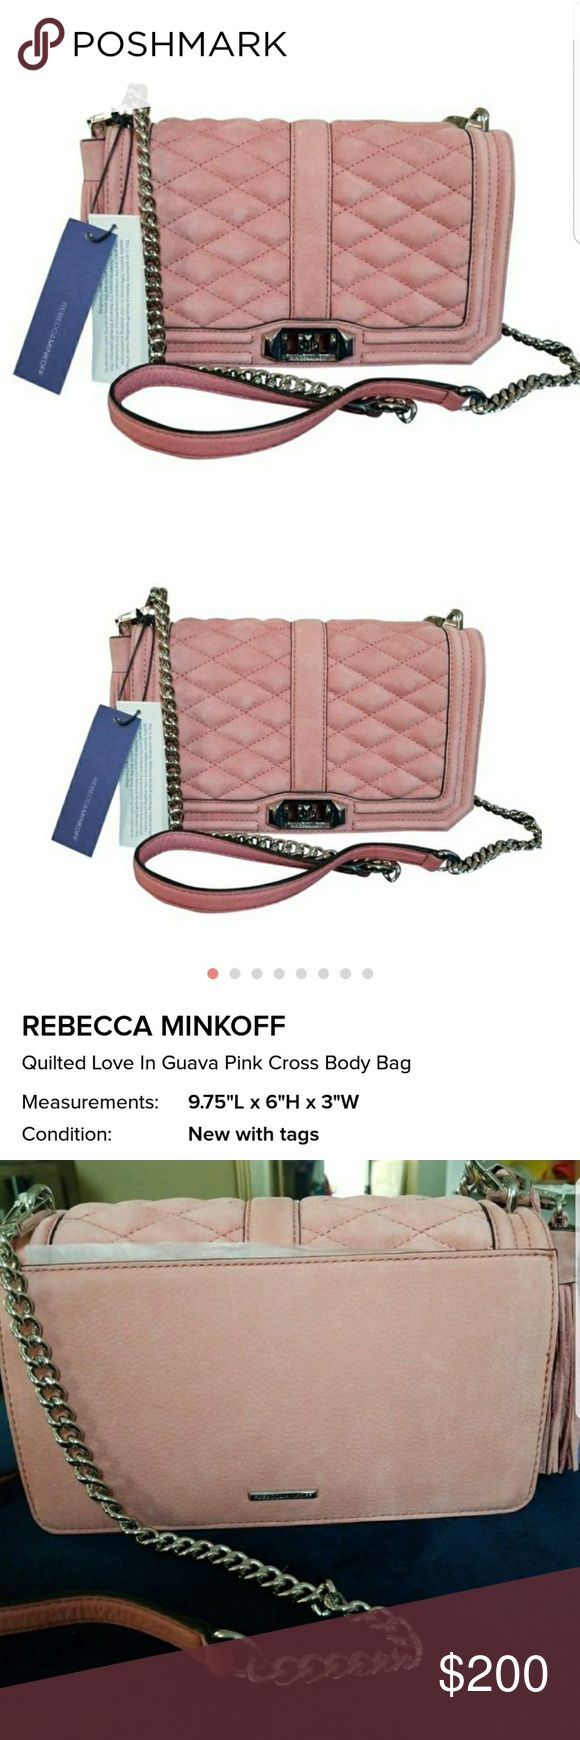 """Rebbeca Minkoff Pink Suede Quilted Cross Body Bag Rebbeca Minkoff Pink Suede Quilted Cross Body Bag In """"Pink Guava"""" Rebecca Minkoff Bags Crossbody Bags"""